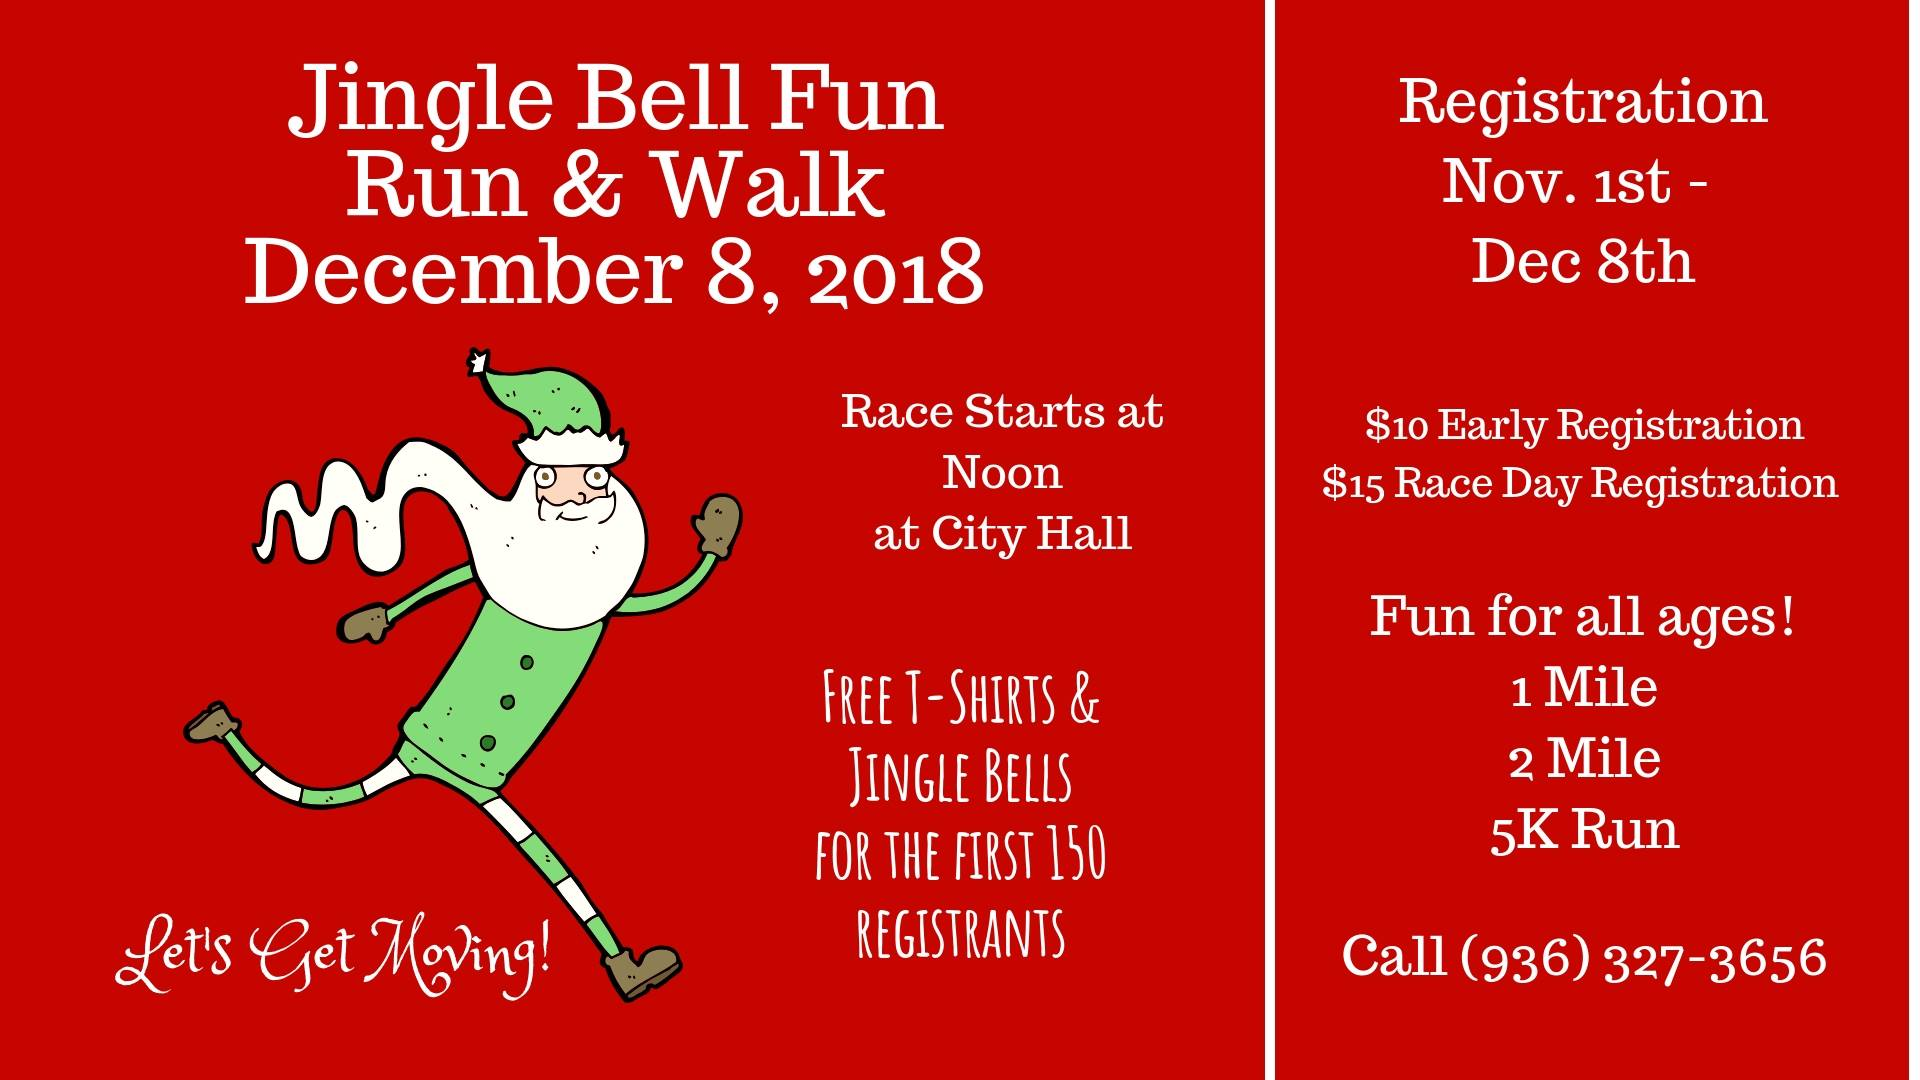 Jingle Bell Fun Run 2018